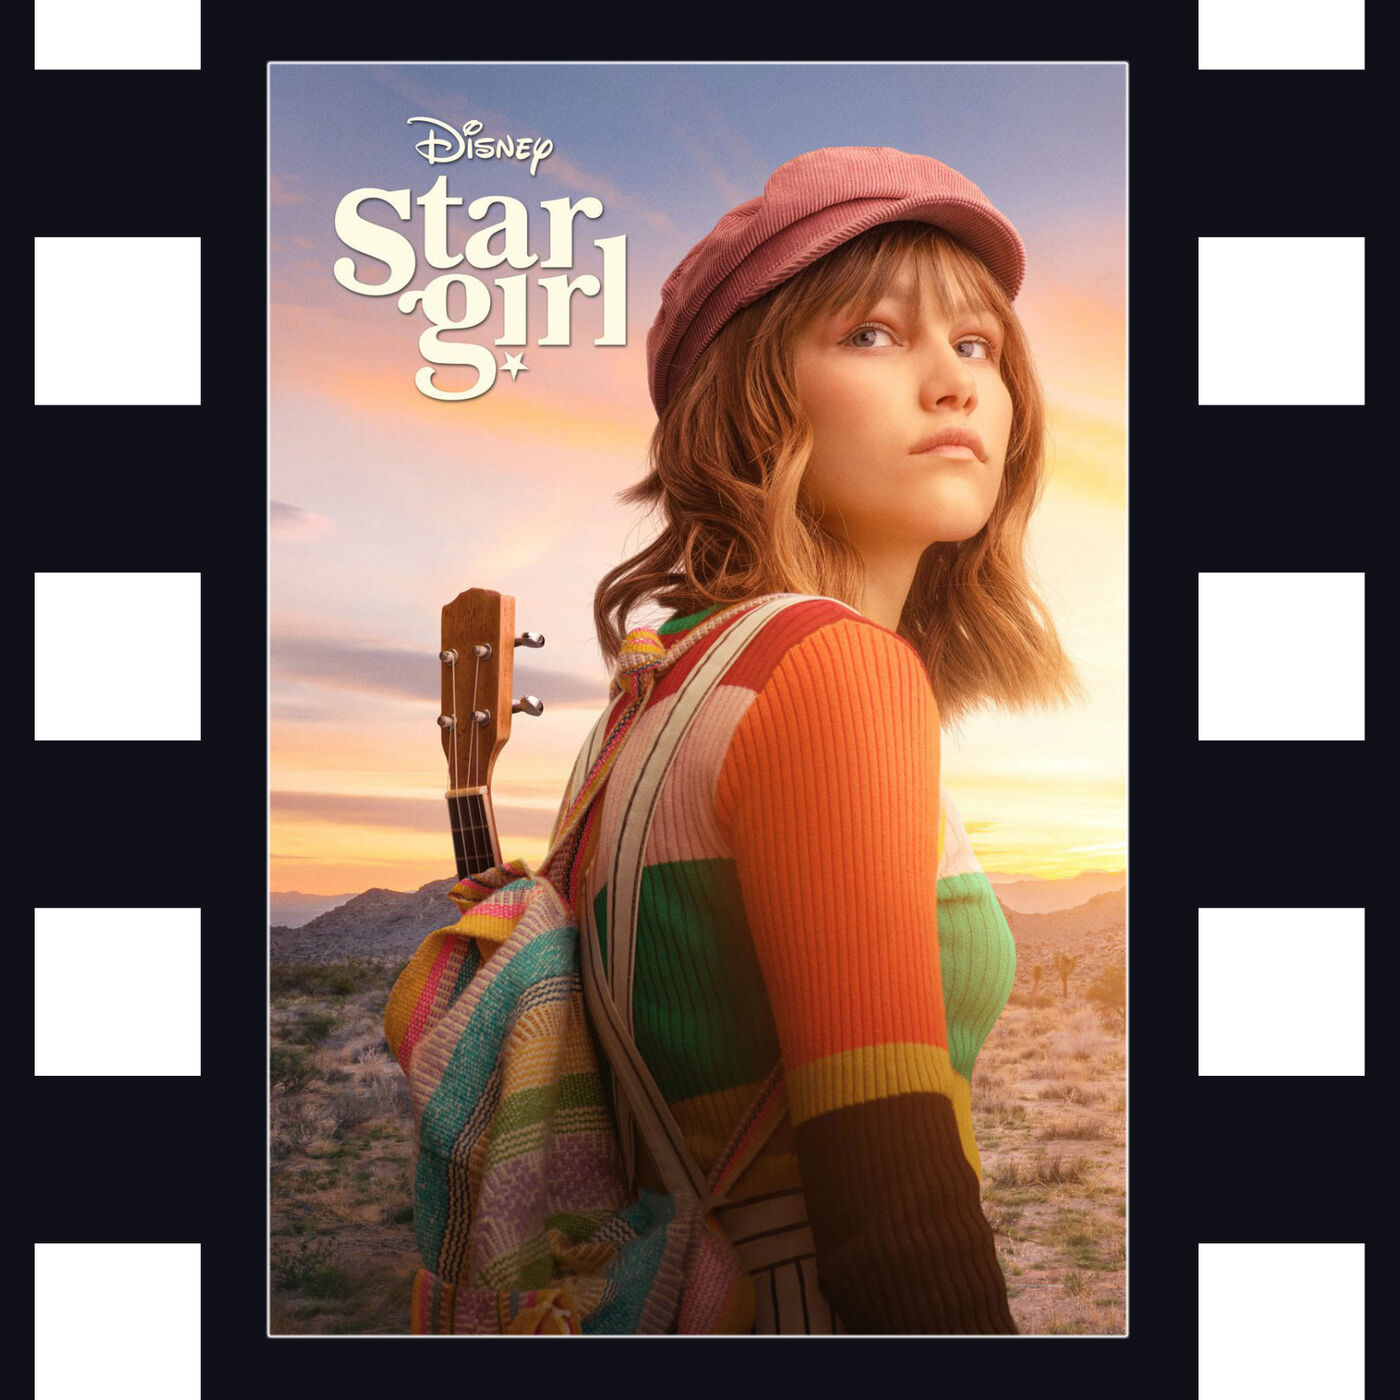 Stargirl - Discussing Adaptions and Christ's Joy in Kindness